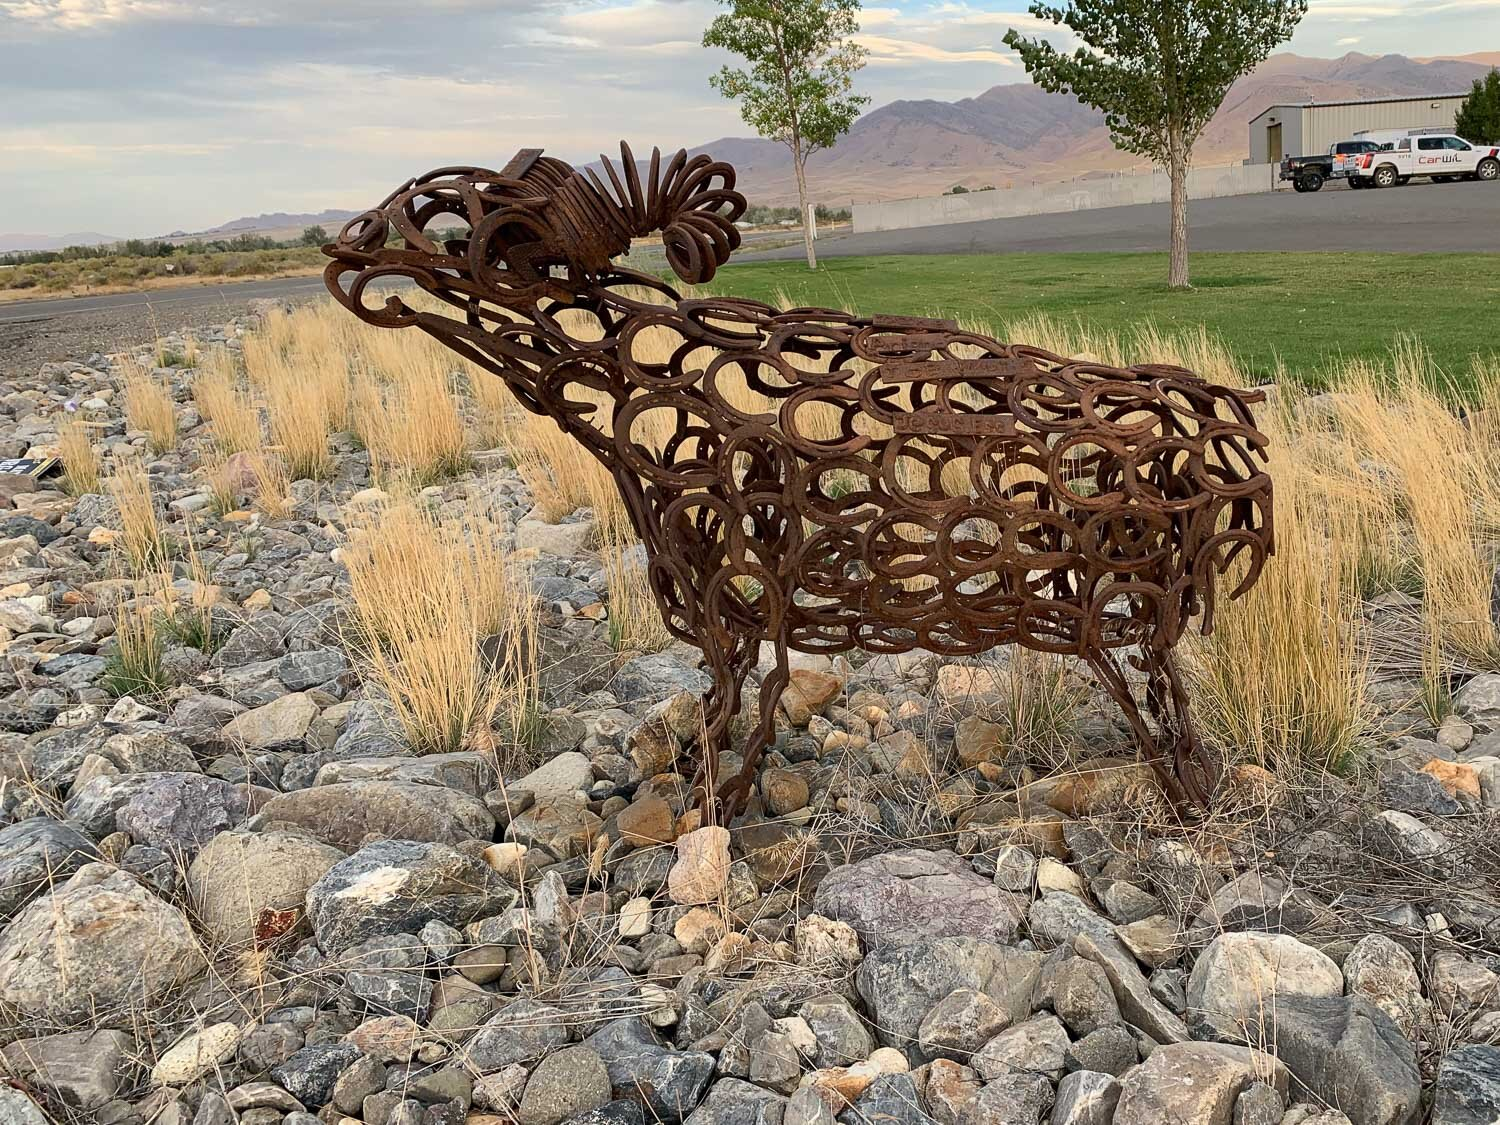 sheep sculpture made of horseshoes.